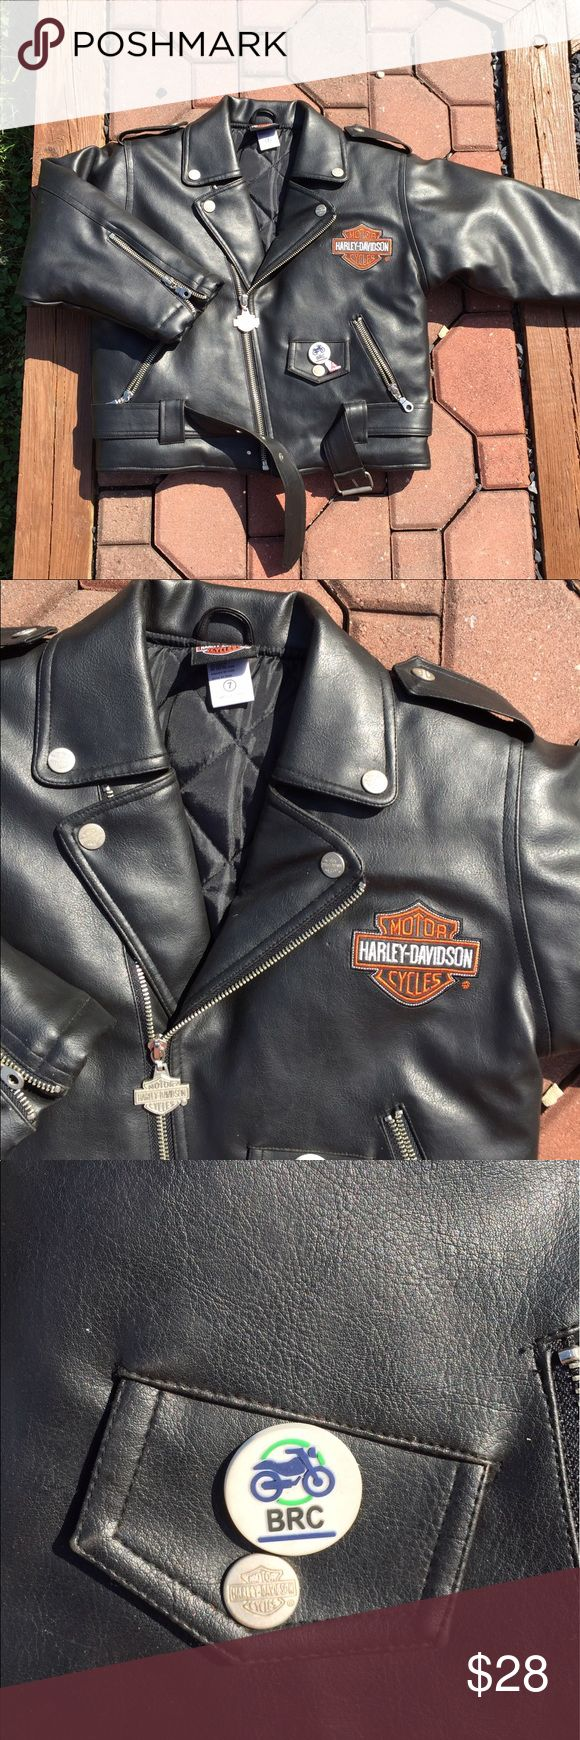 Harley Davidson Youth Faux Leather Jacket Boys  7 Boys size 7. Faux leather. Pin pictured included. Be sure to view the other items in our closet. We offer  women's, Mens and kids items in a variety of sizes. Bundle and save!! Thank you for viewing our item!! Harley-Davidson Jackets & Coats